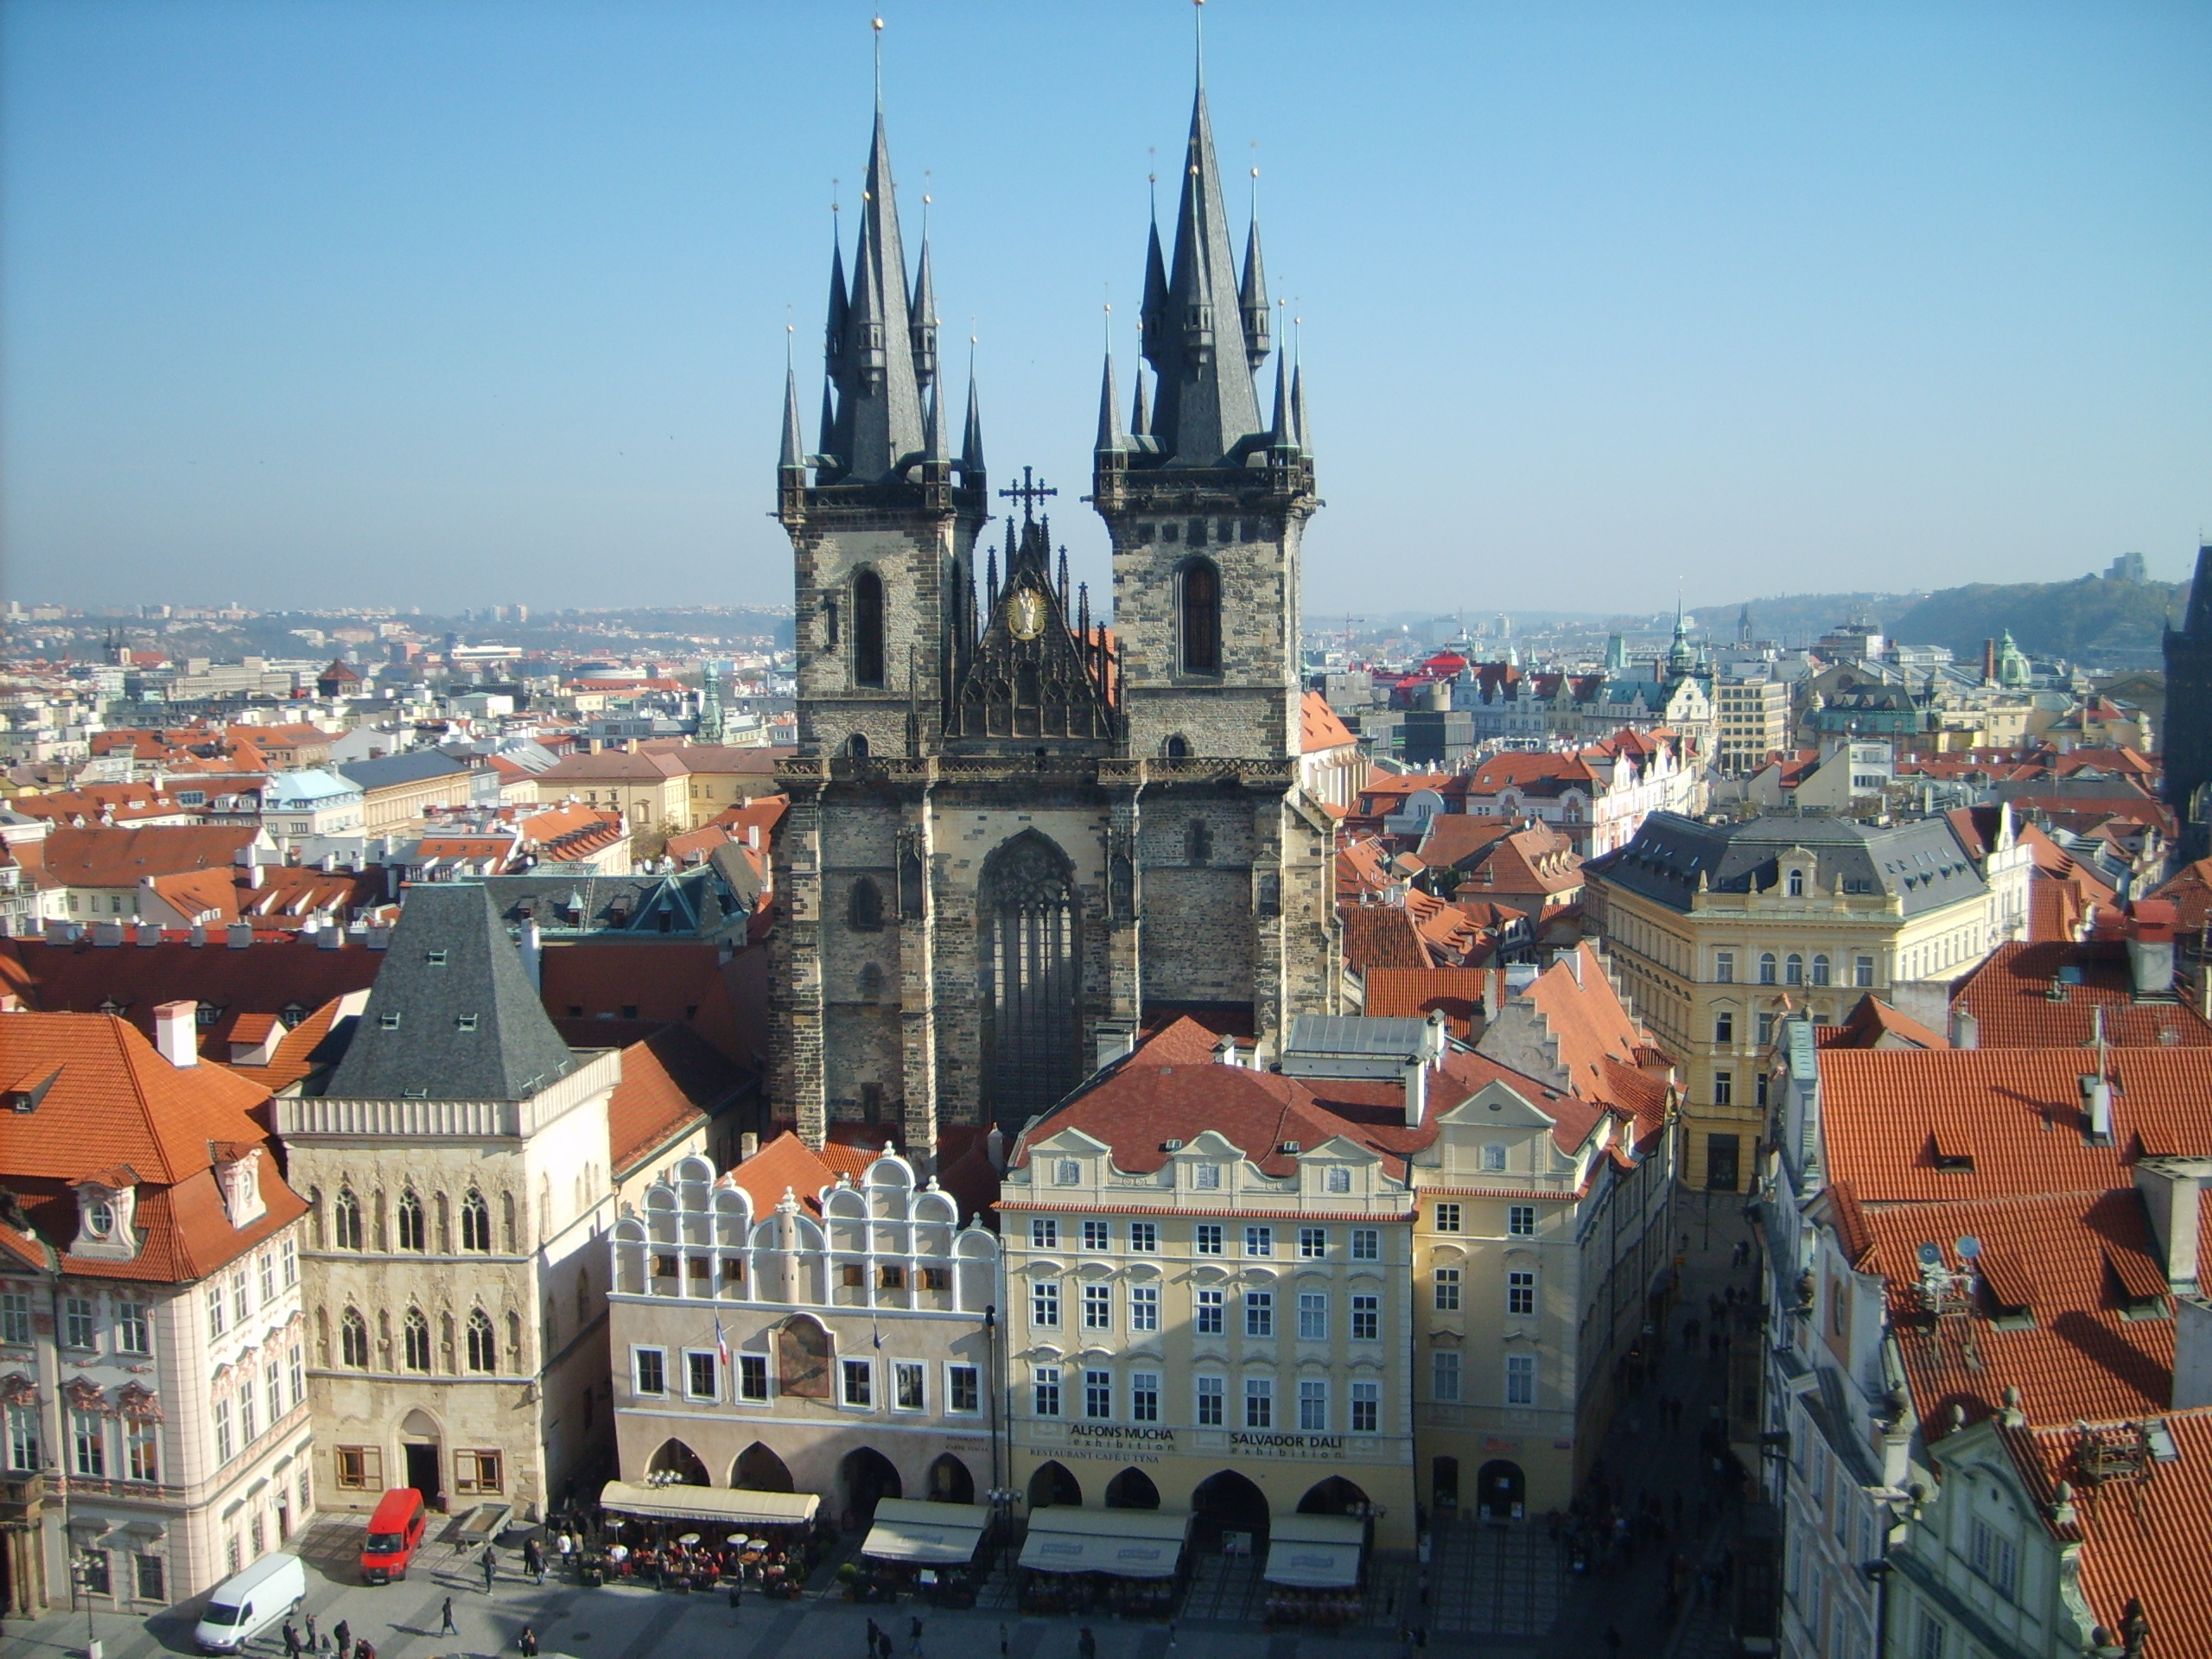 czech republic and prague Information on czech republic — geography, history, politics, government, economy, population statistics, culture, religion, languages, largest cities, as well as a.